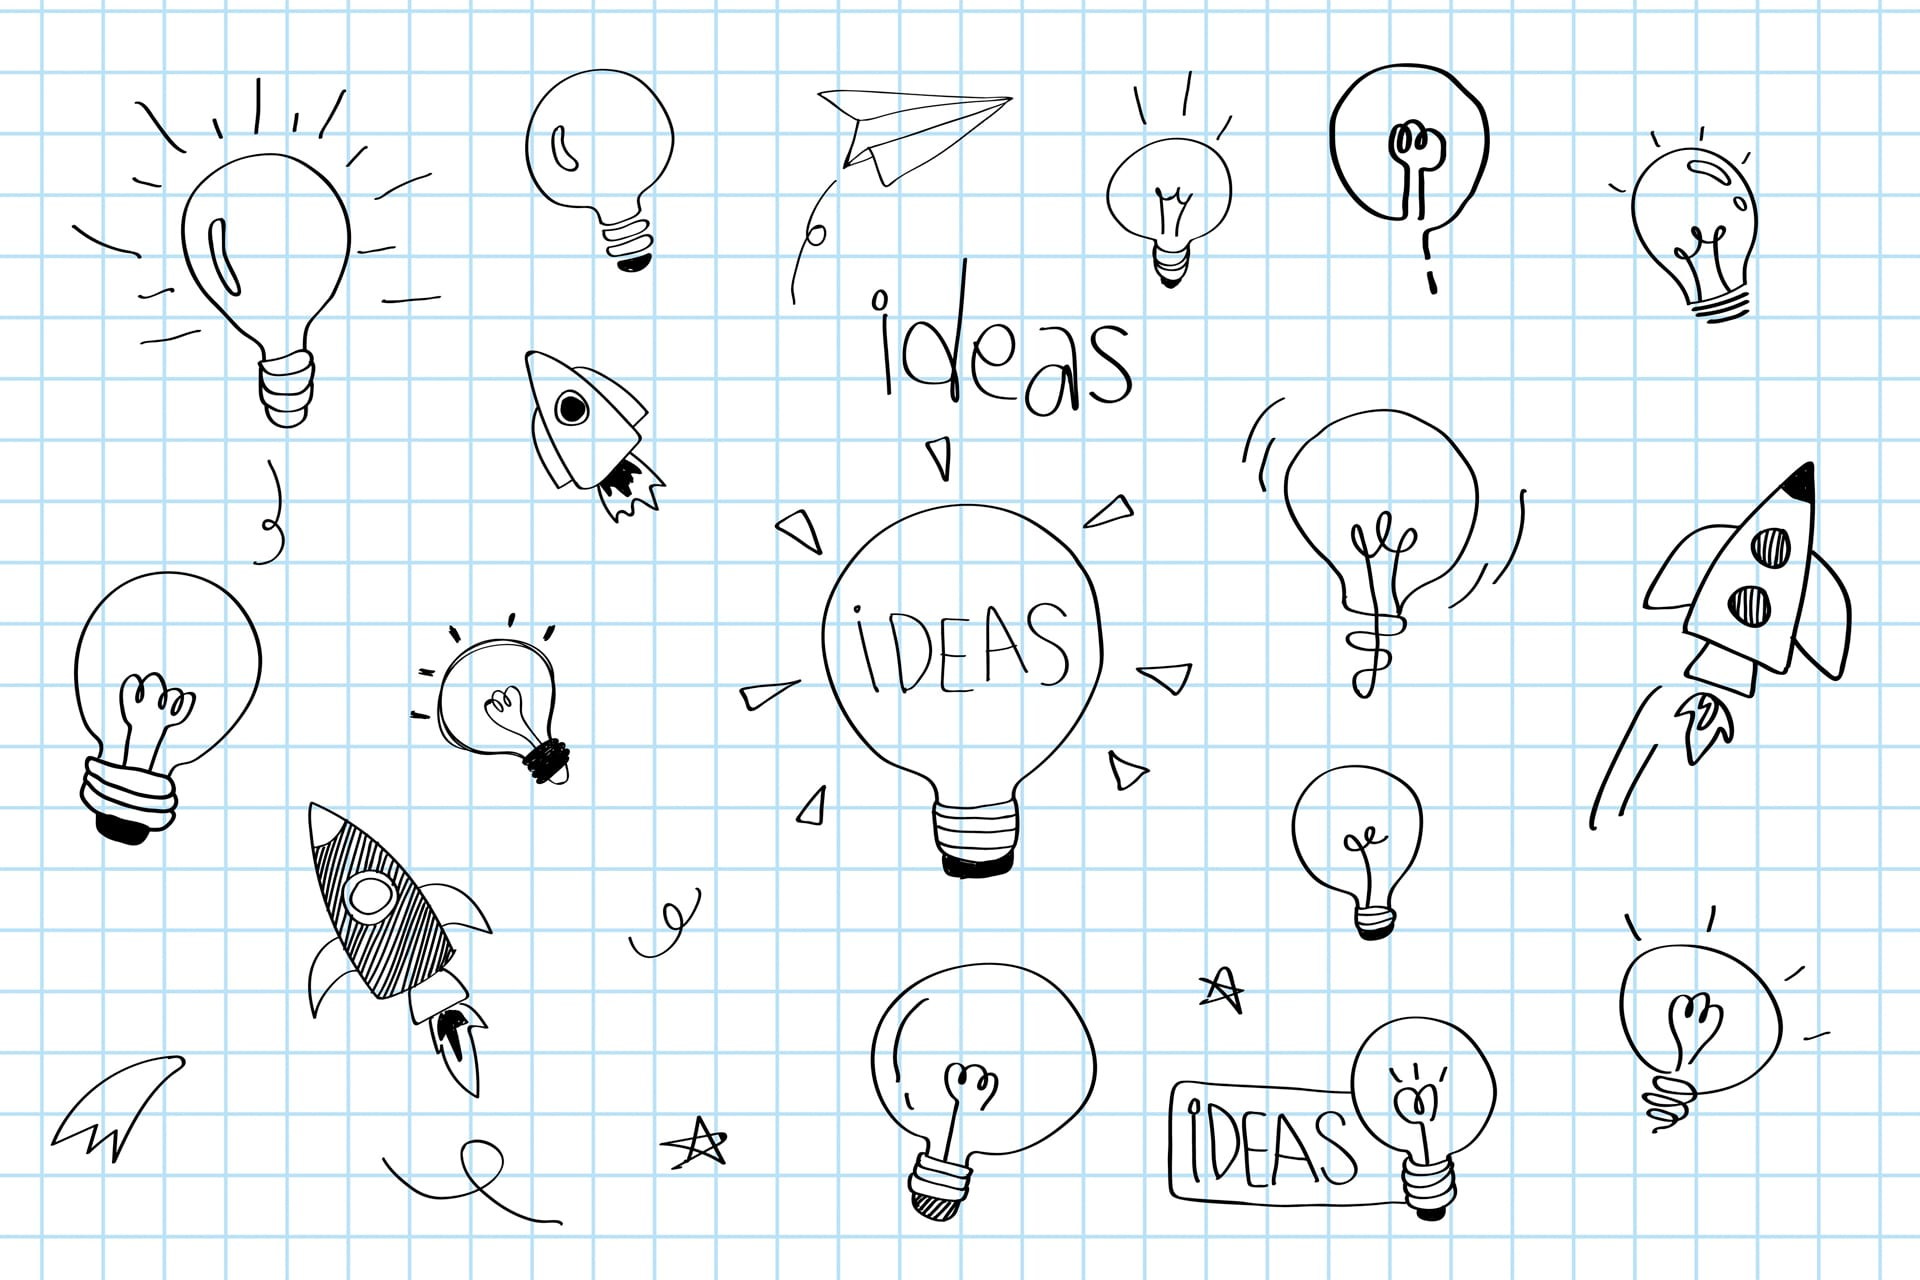 13 Crazy Small Business Marketing Ideas To Boost Your Results